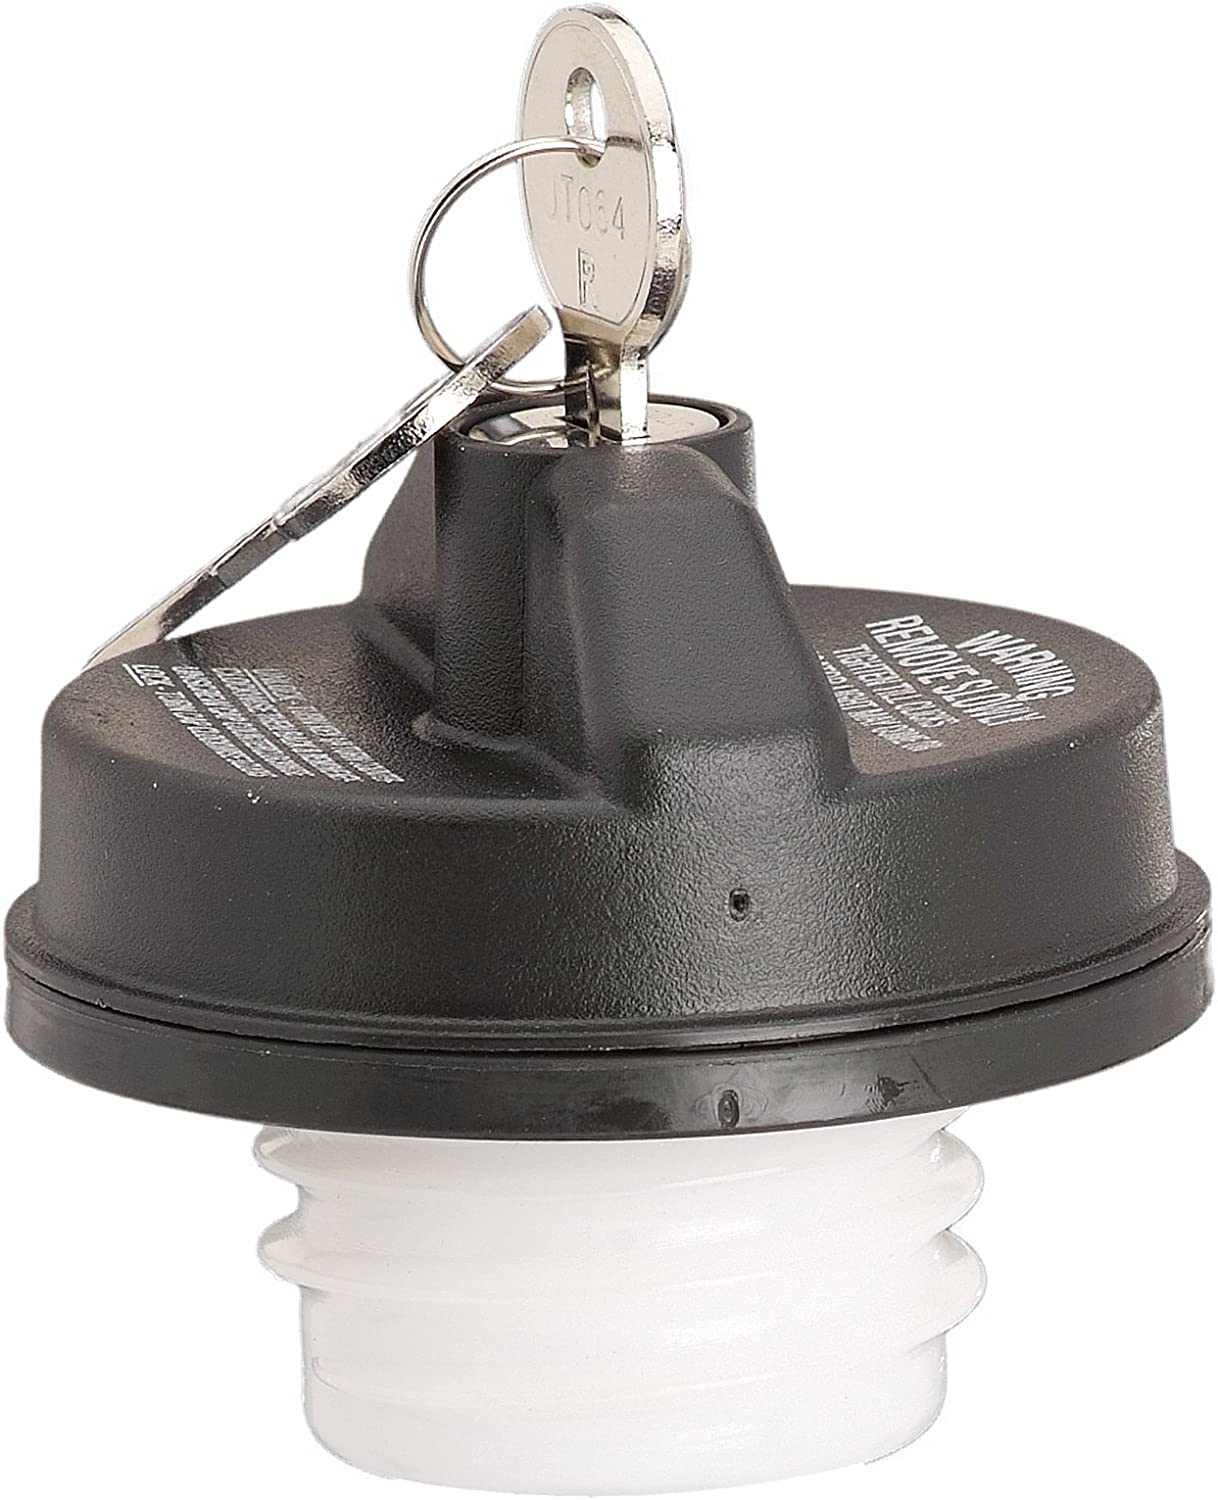 Stant 10504 Locking Fuel Cap: Automotive